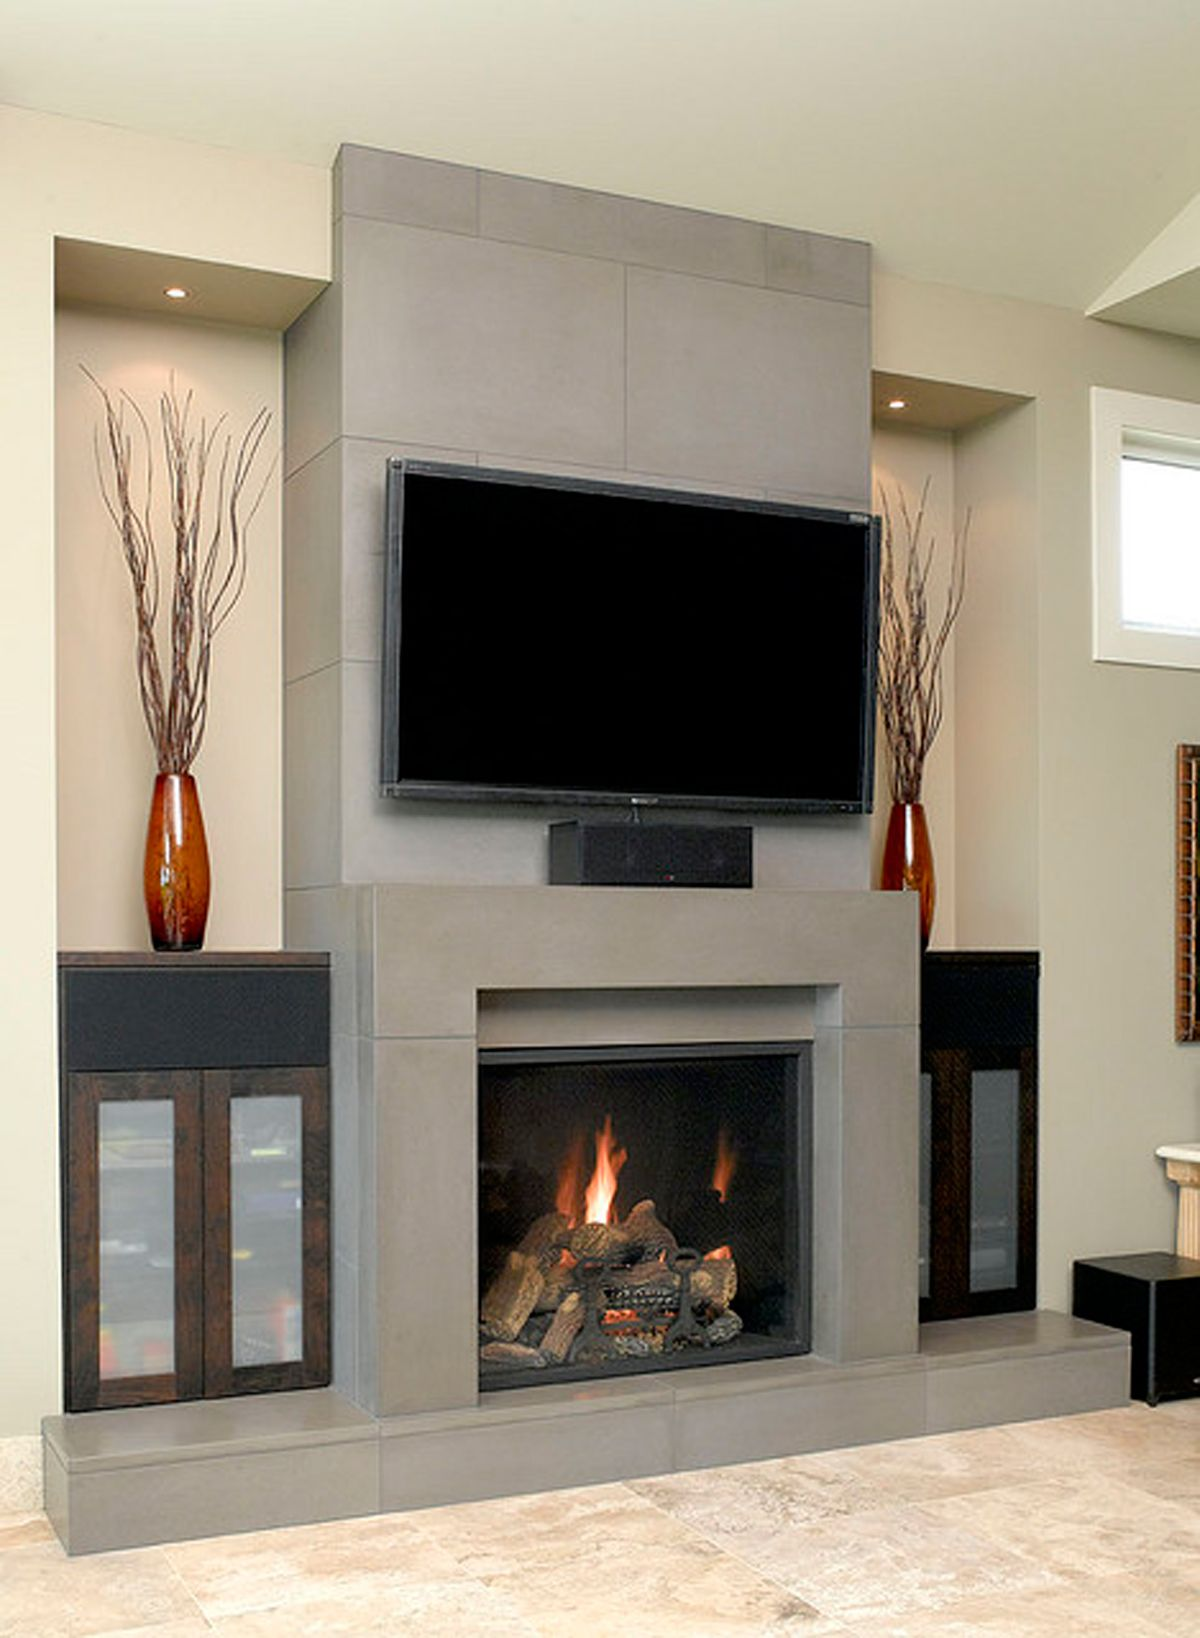 with best smartly along insert detailed gasfireplace gas reviews heated fireplace s